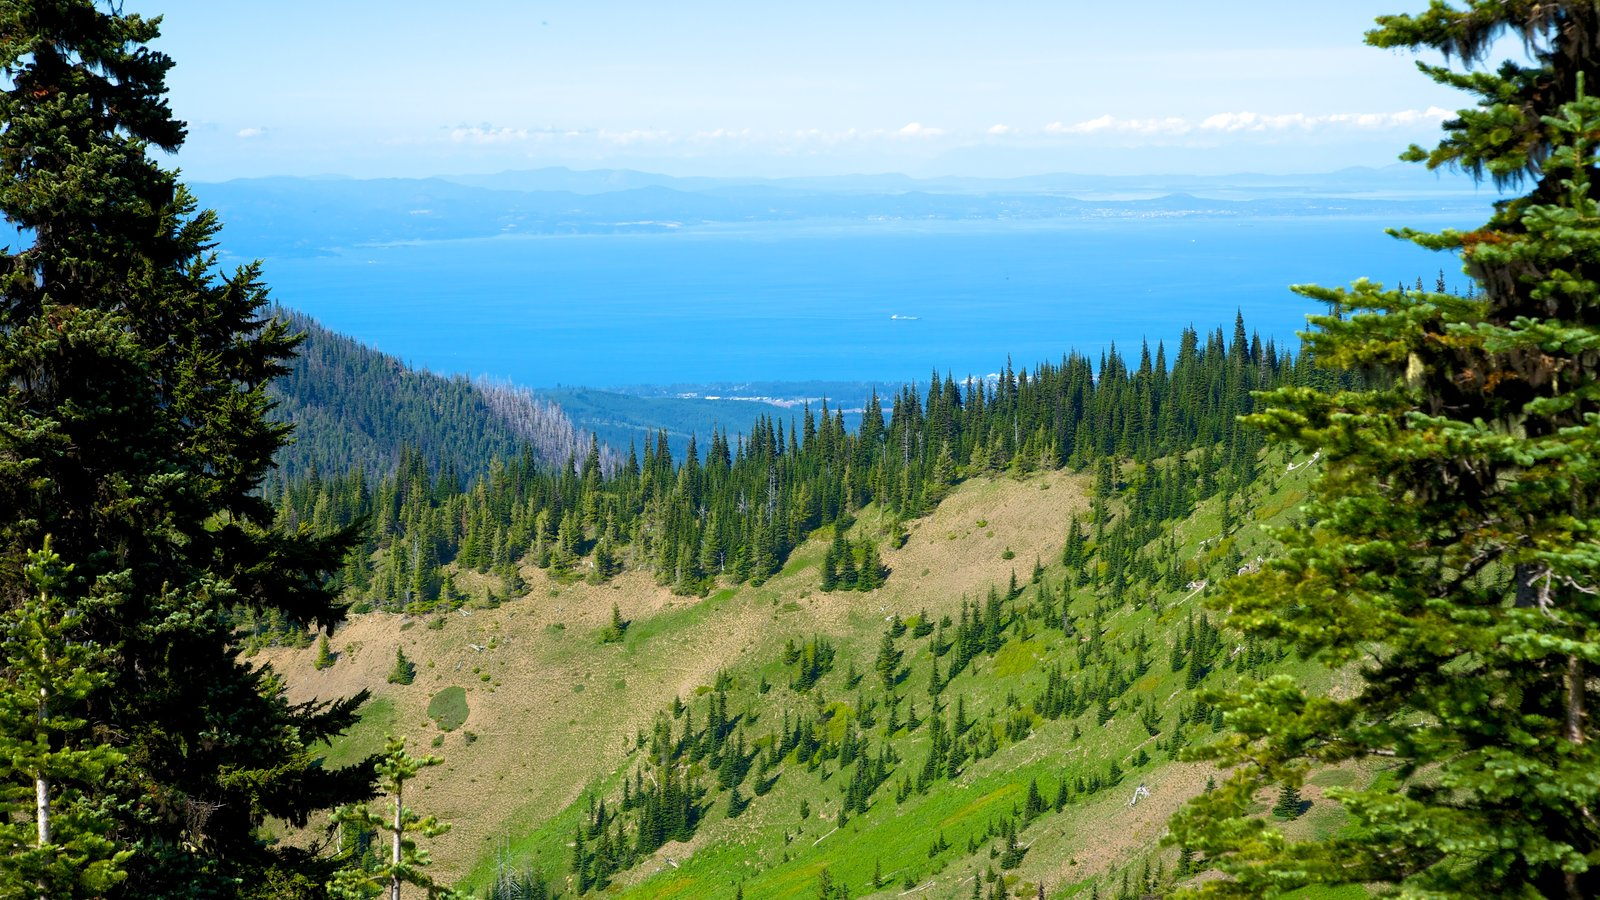 Hurricane Ridge Visitors Center featuring tranquil scenes, forests and landscape views